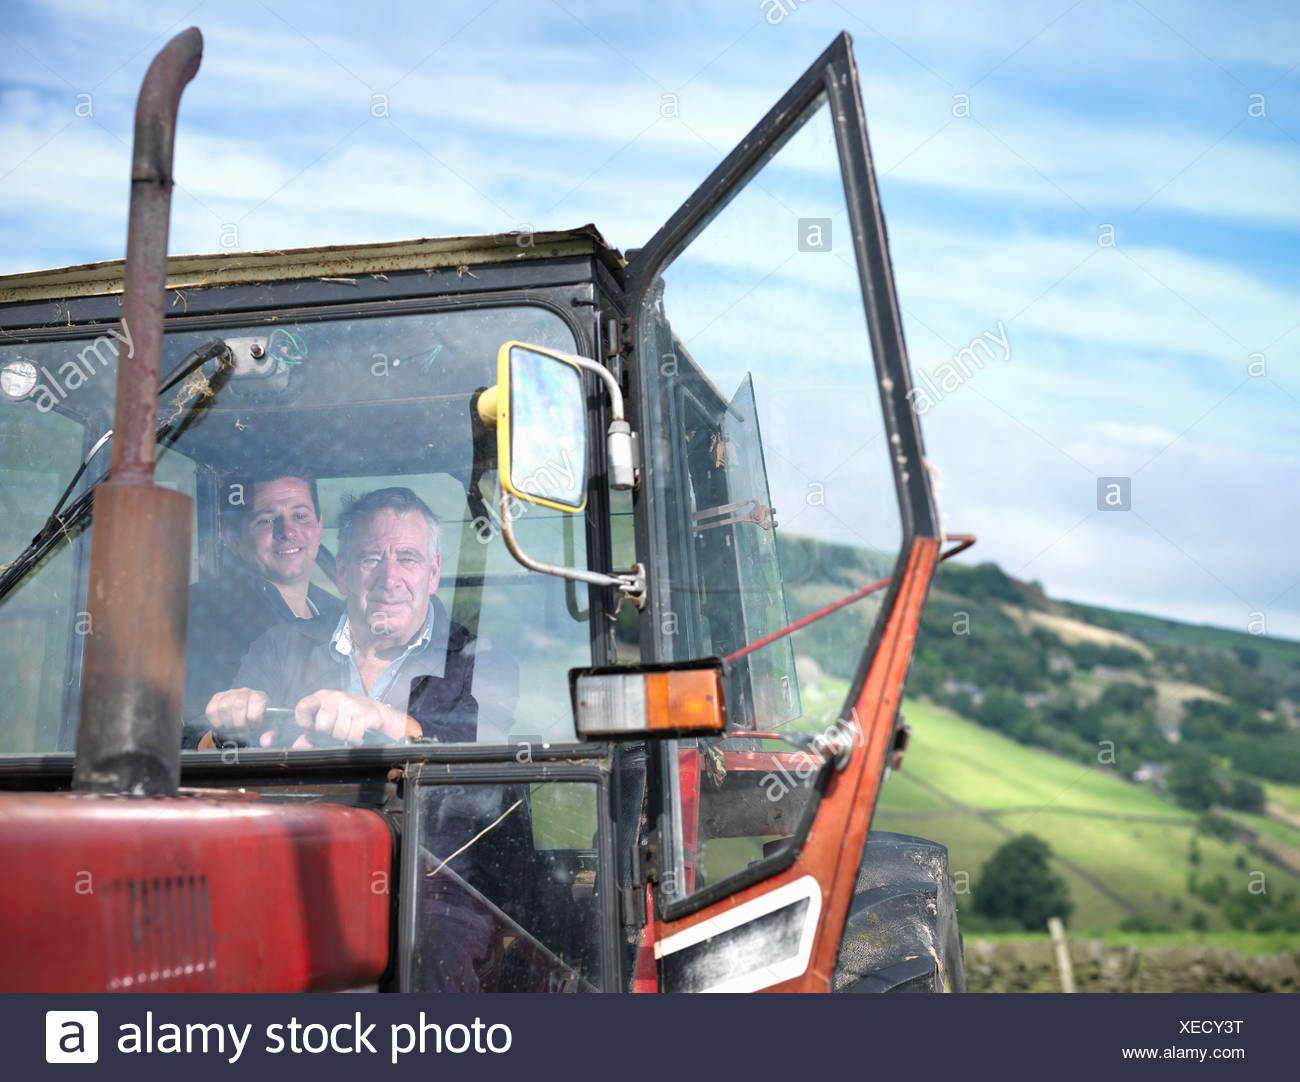 Farmer and son in tractor cab, portrait - Stock Image